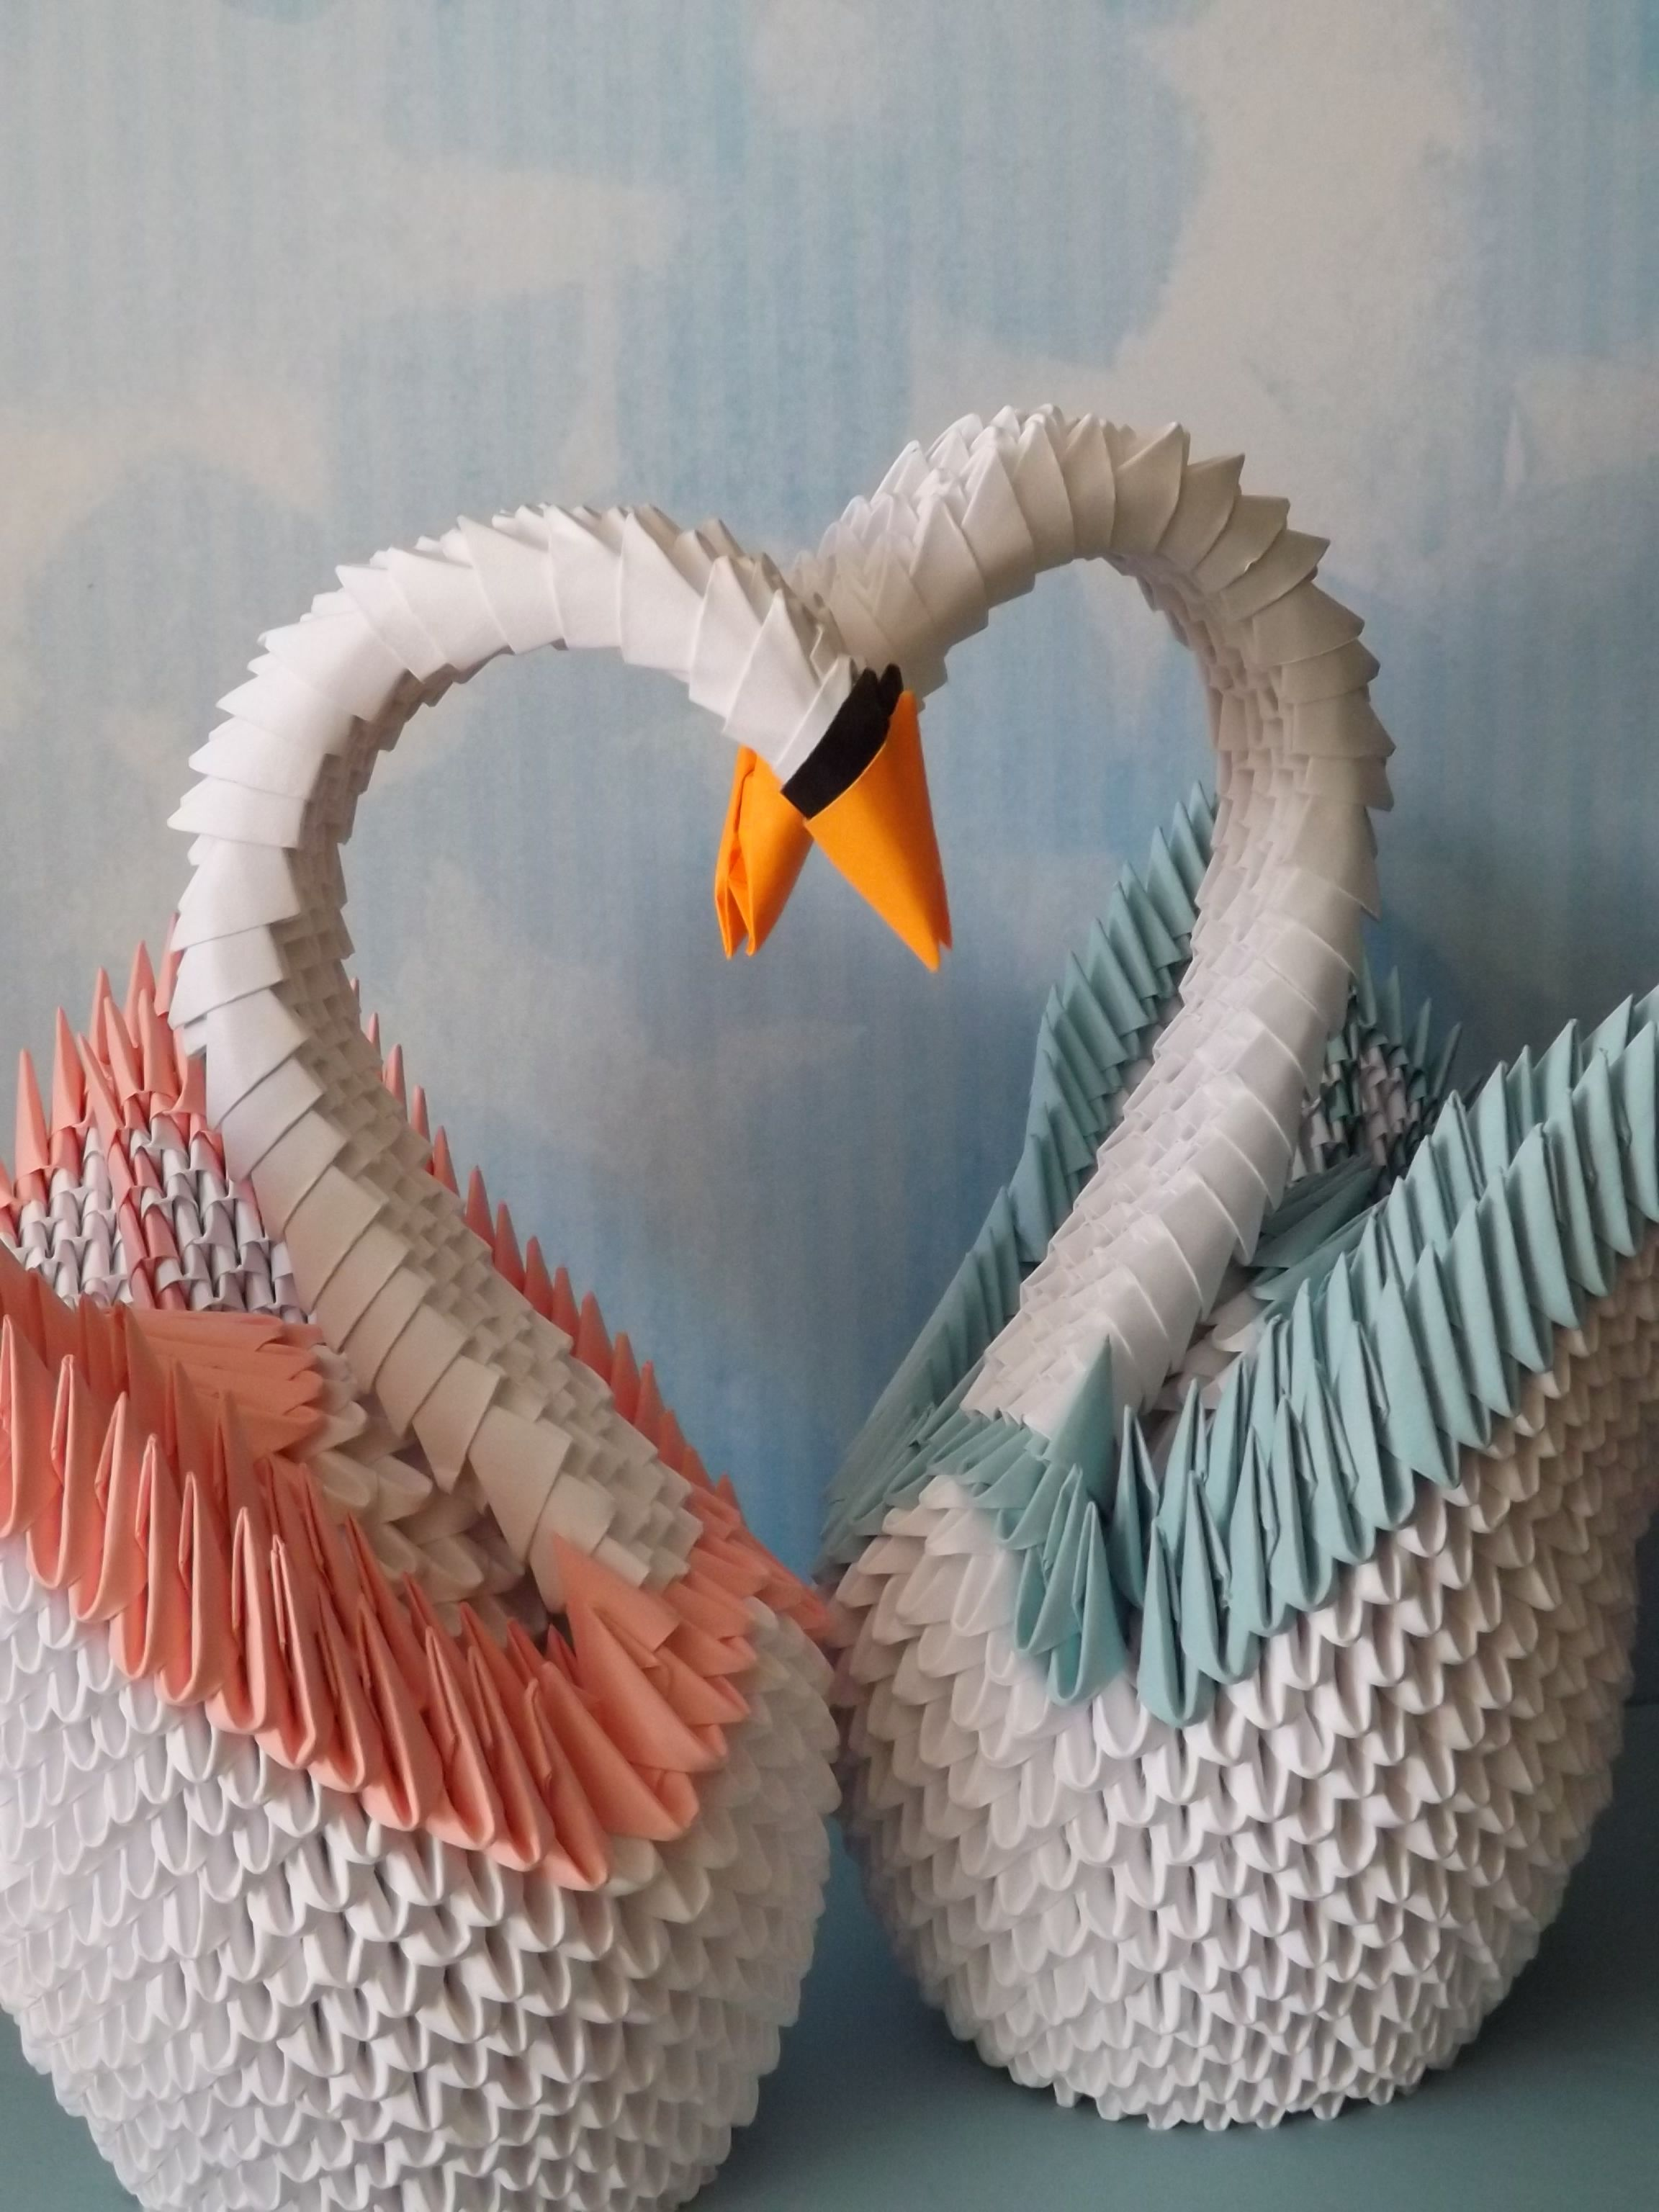 Pin by Creative Little Shop on 3d Origami Swans ... - photo#9